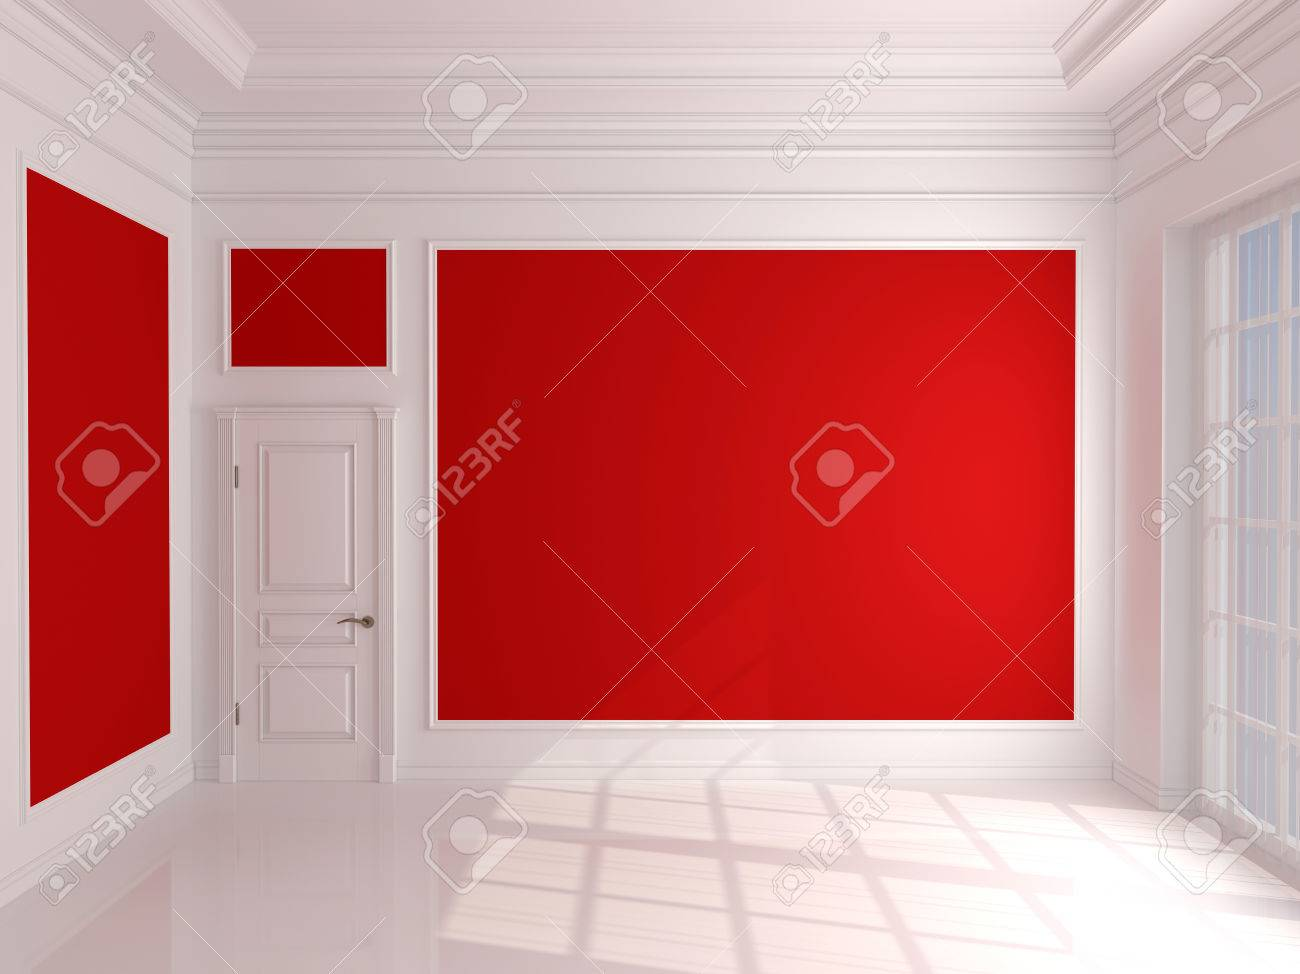 empty interior with red walls and white door stock photo, picture